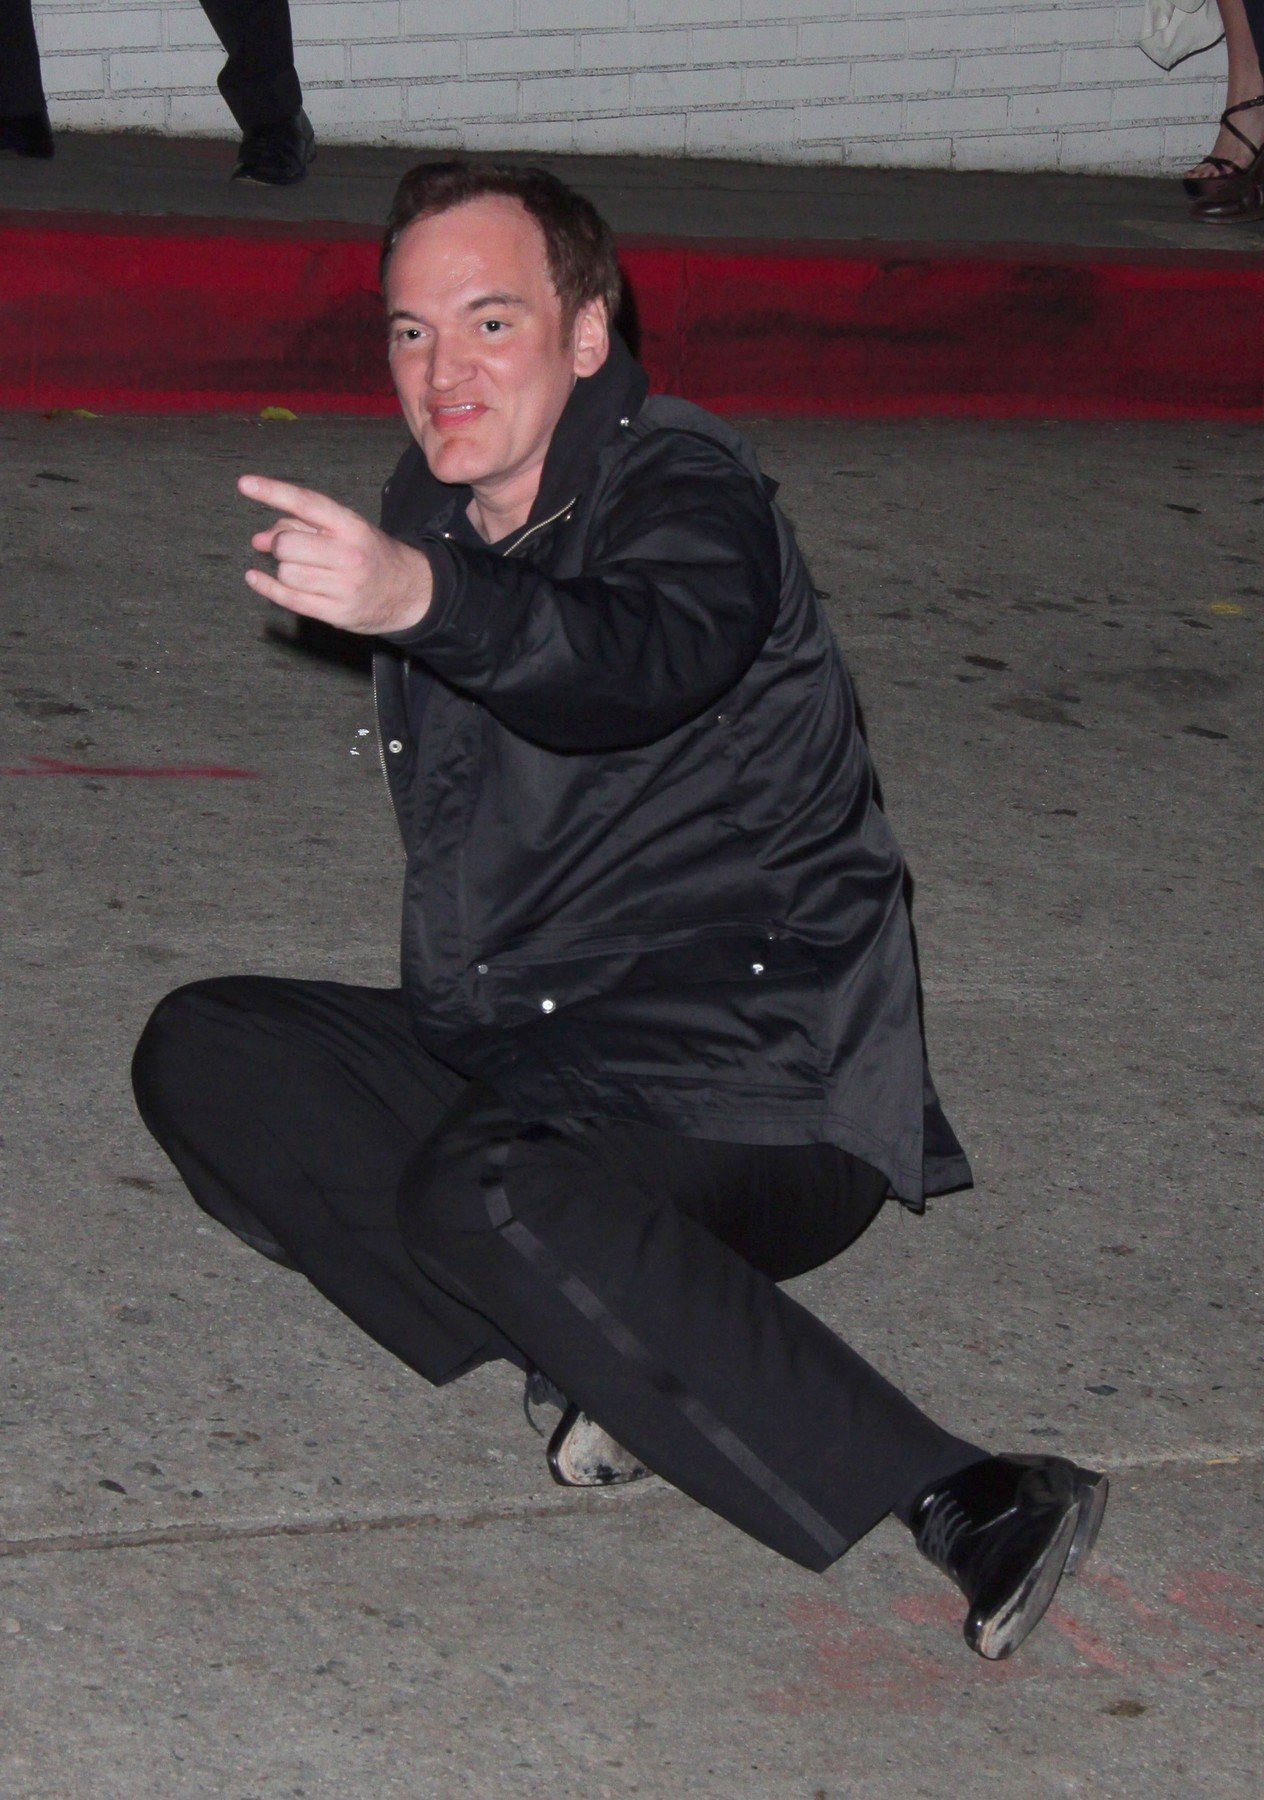 51719, LOS ANGELES, CALIFORNIA -  Sunday February 27 2011. Quentin Tarantino and Paz de la Huerta leave Chateau Marmont together.  As Quentin  walked to the car door he slipped and fell down to the ground in the same spot Paz de la Huerta fell a few weeks earlier ., Image: 90937588, License: Rights-managed, Restrictions: , Model Release: no, Credit line: Profimedia, Pacific coast news